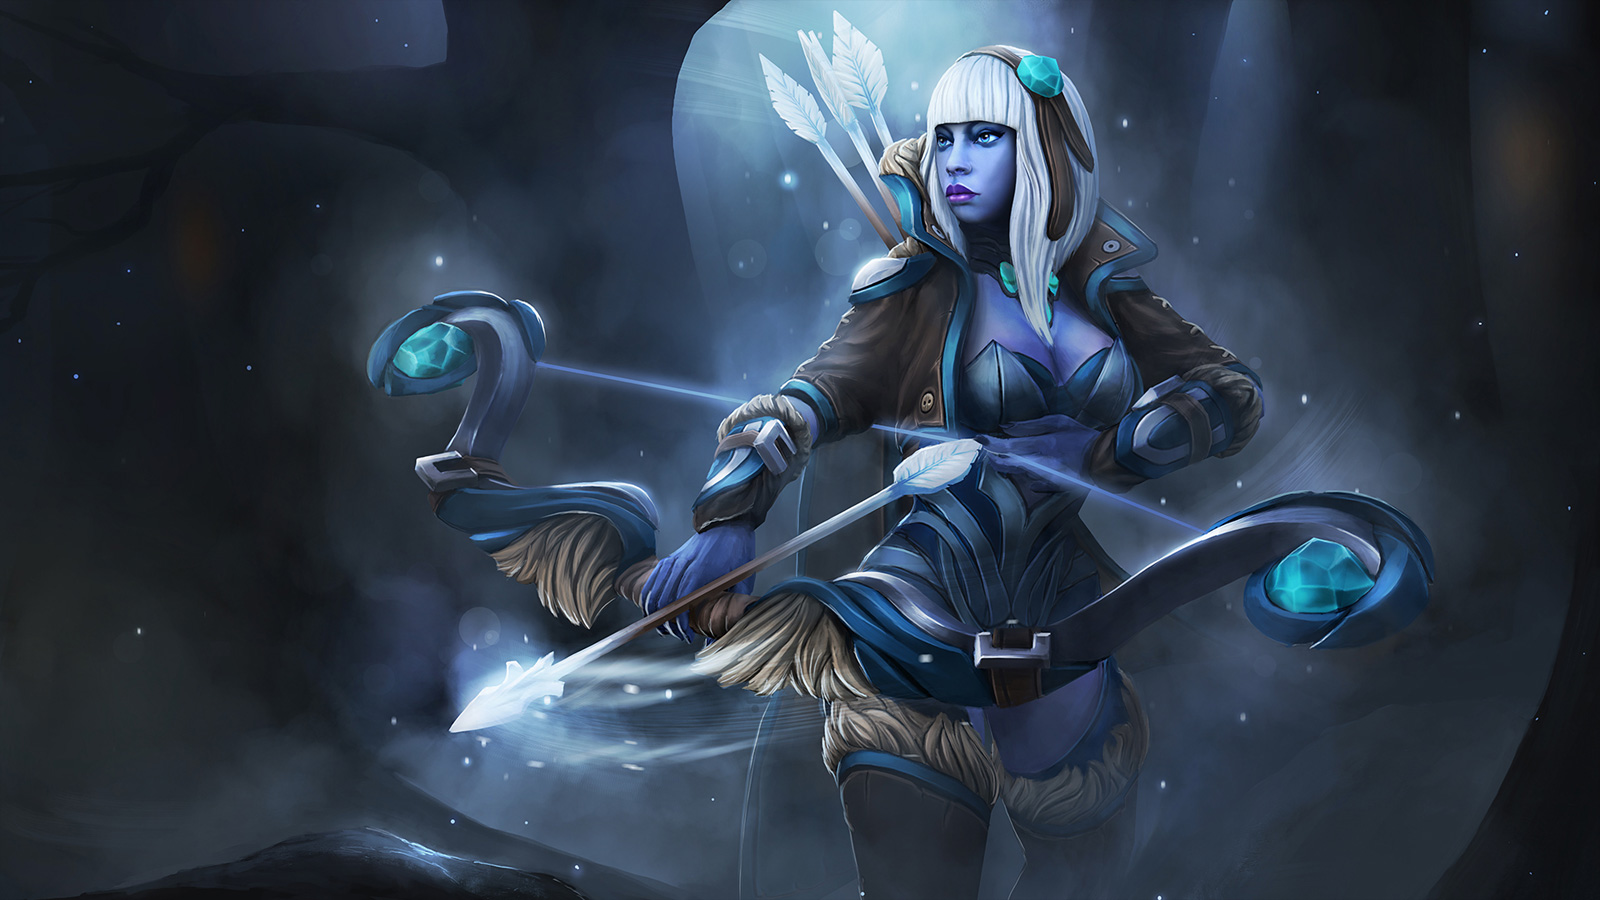 Drow Ranger S Mania S Mask Immortal: 20+ Drow Ranger Pictures And Ideas On STEM Education Caucus